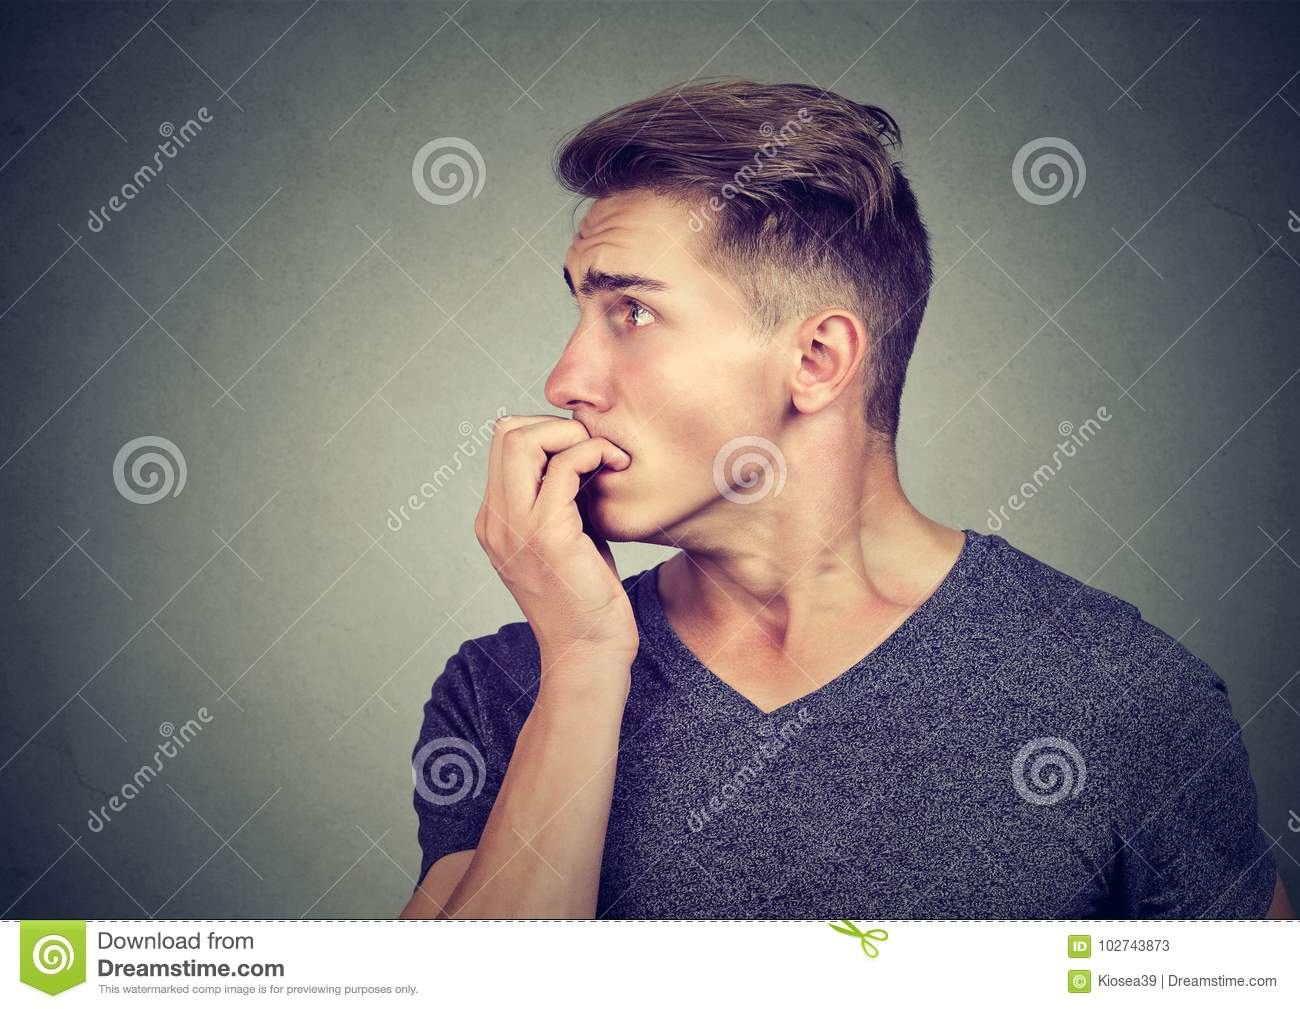 Preoccupied anxious young man biting his fingernails looking to the side